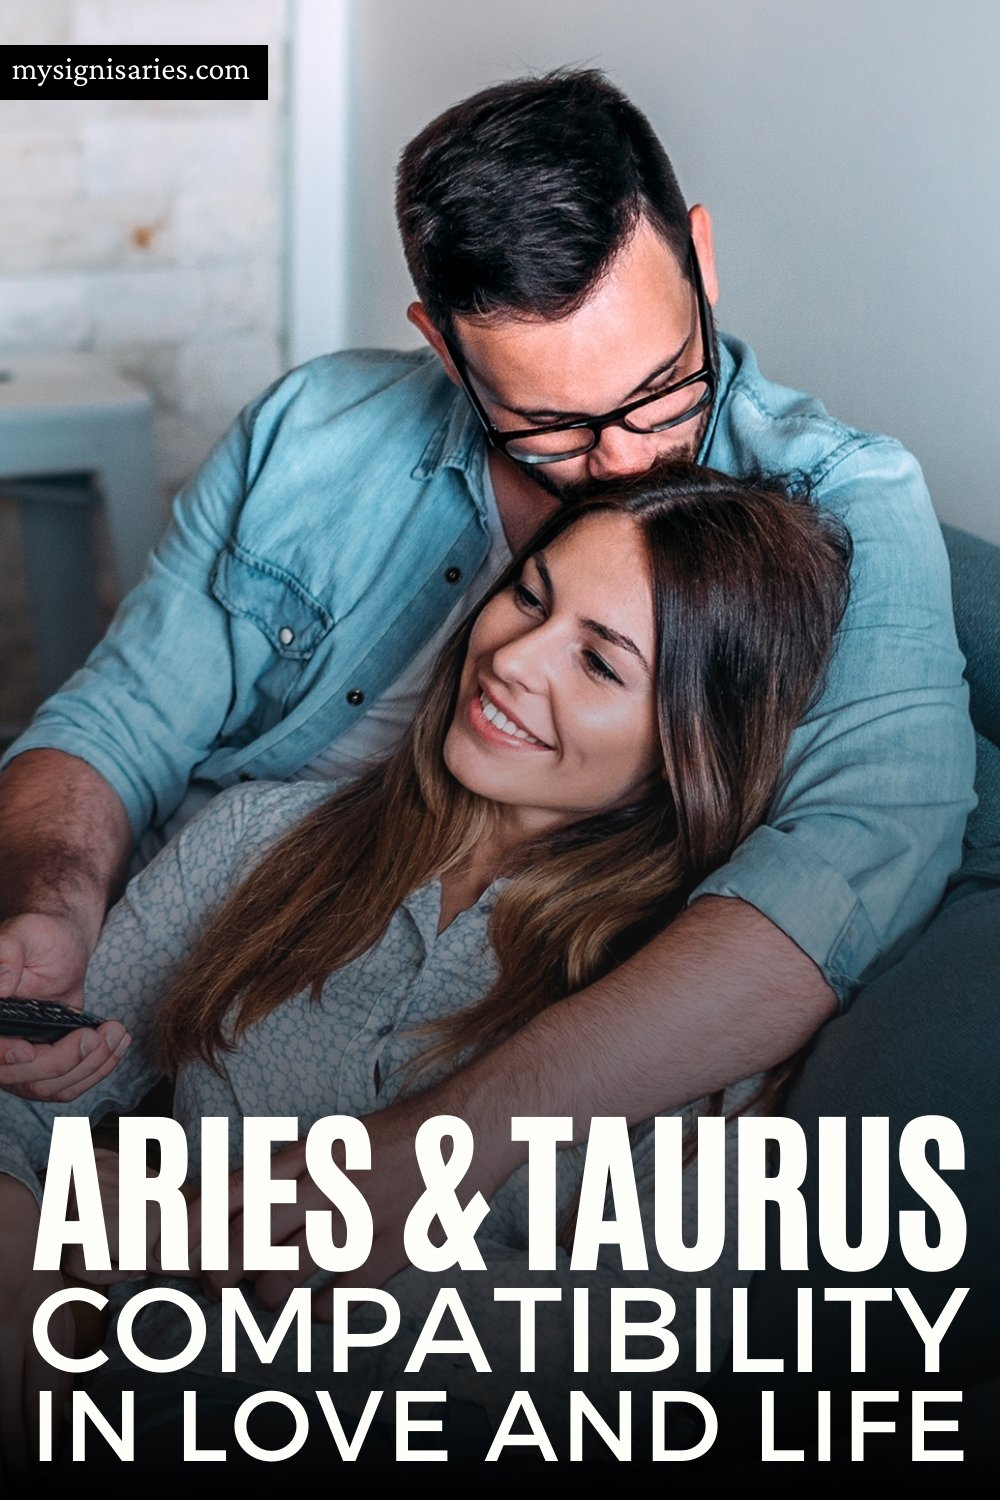 Aries And Taurus Compatibility In Love And Life #aries #taurus #arieslove #ariessign #zodiac #astrology